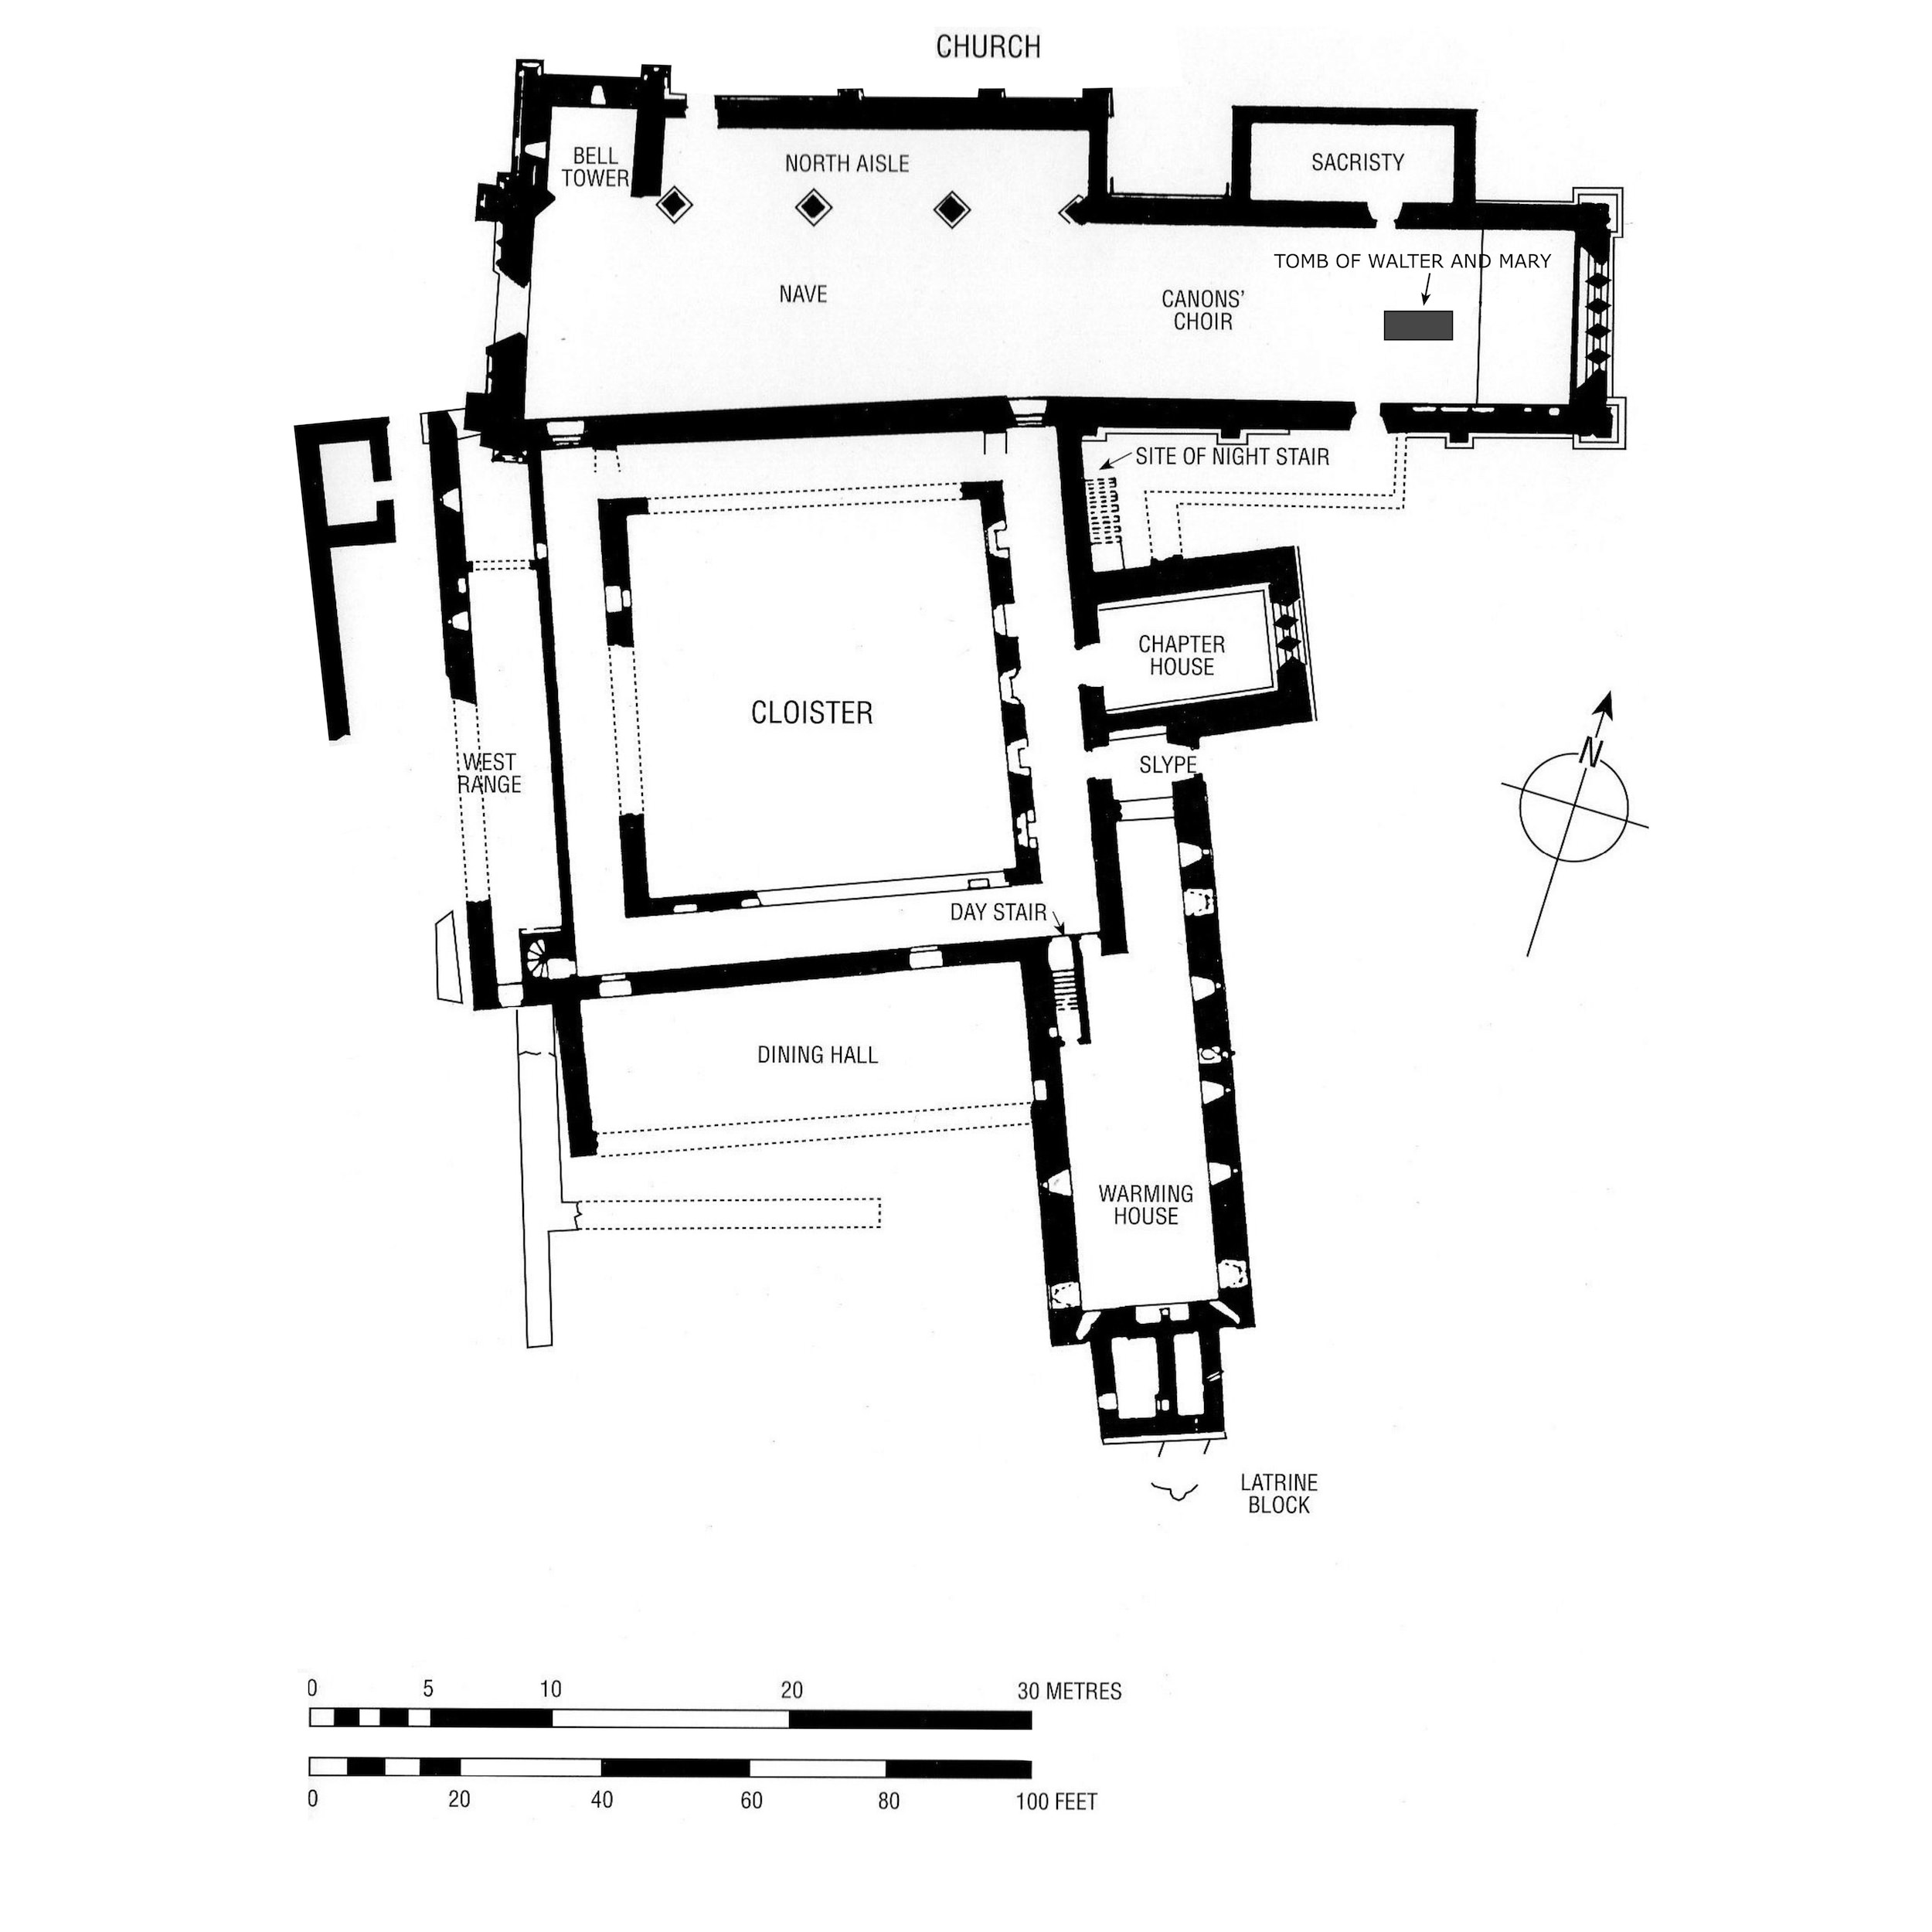 Floor plan of Inchmahome Priory